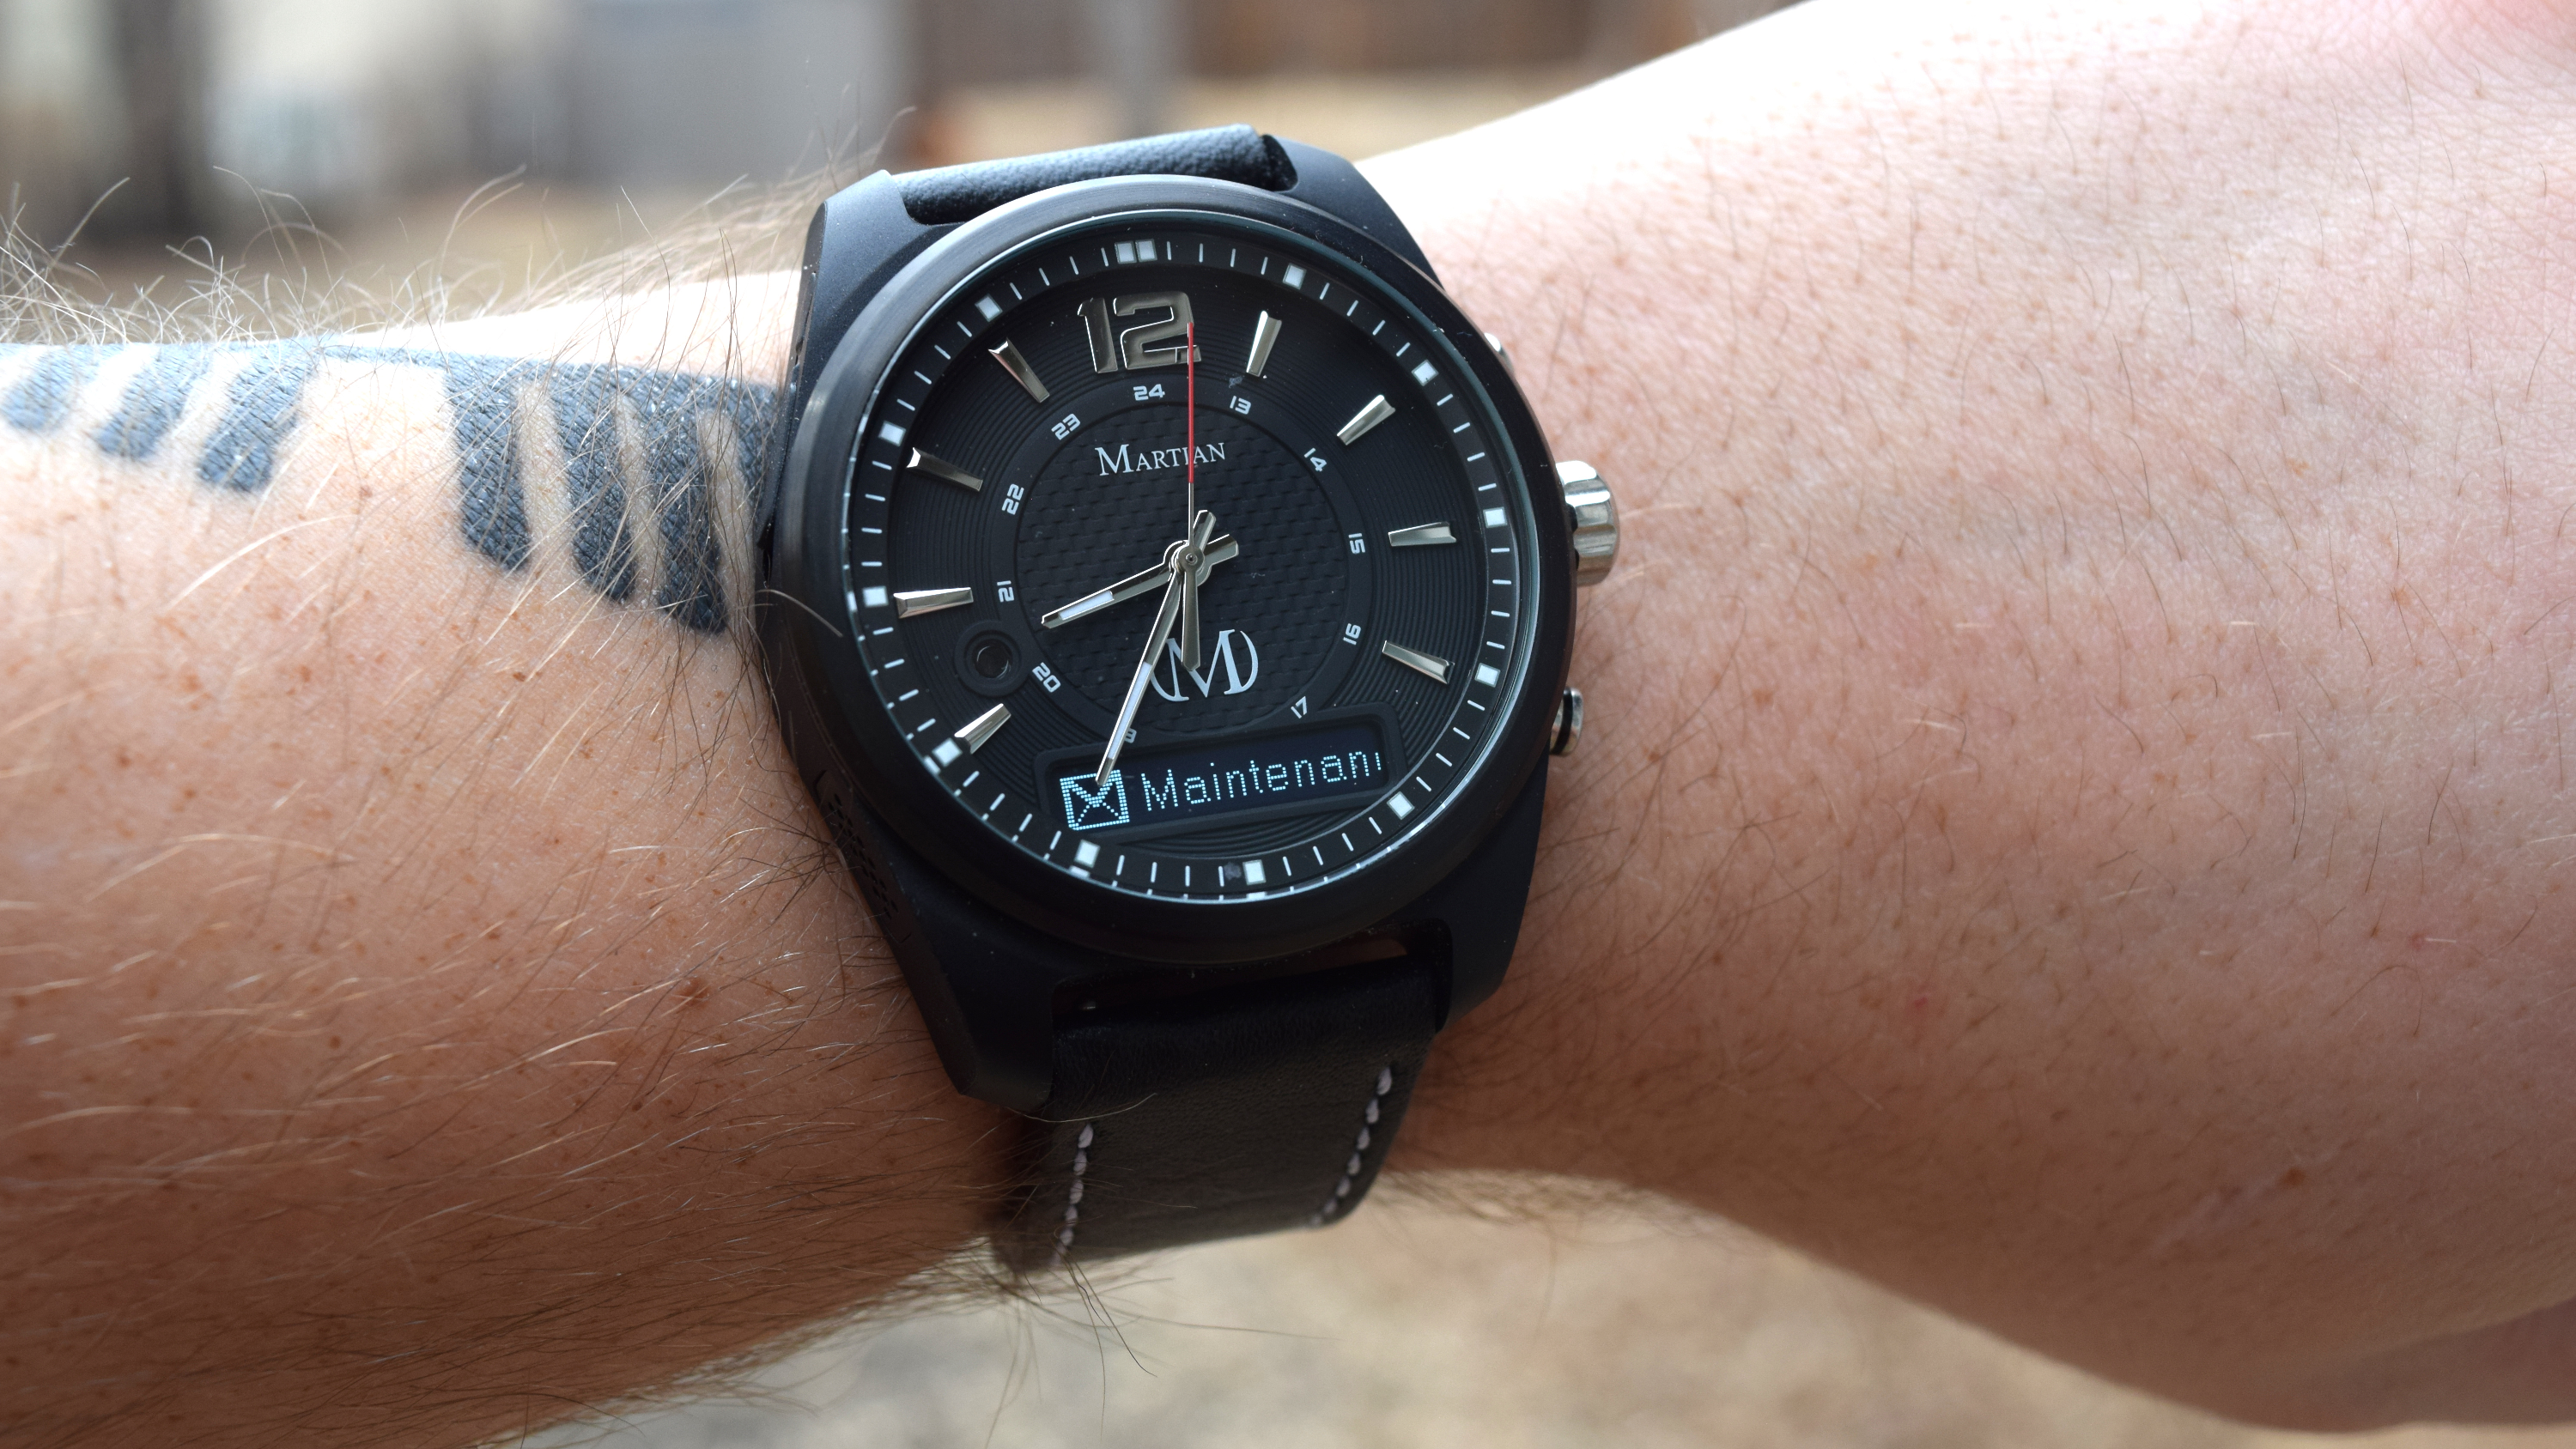 skagen connected new hybrid smartwatch everyday watches r watch comments